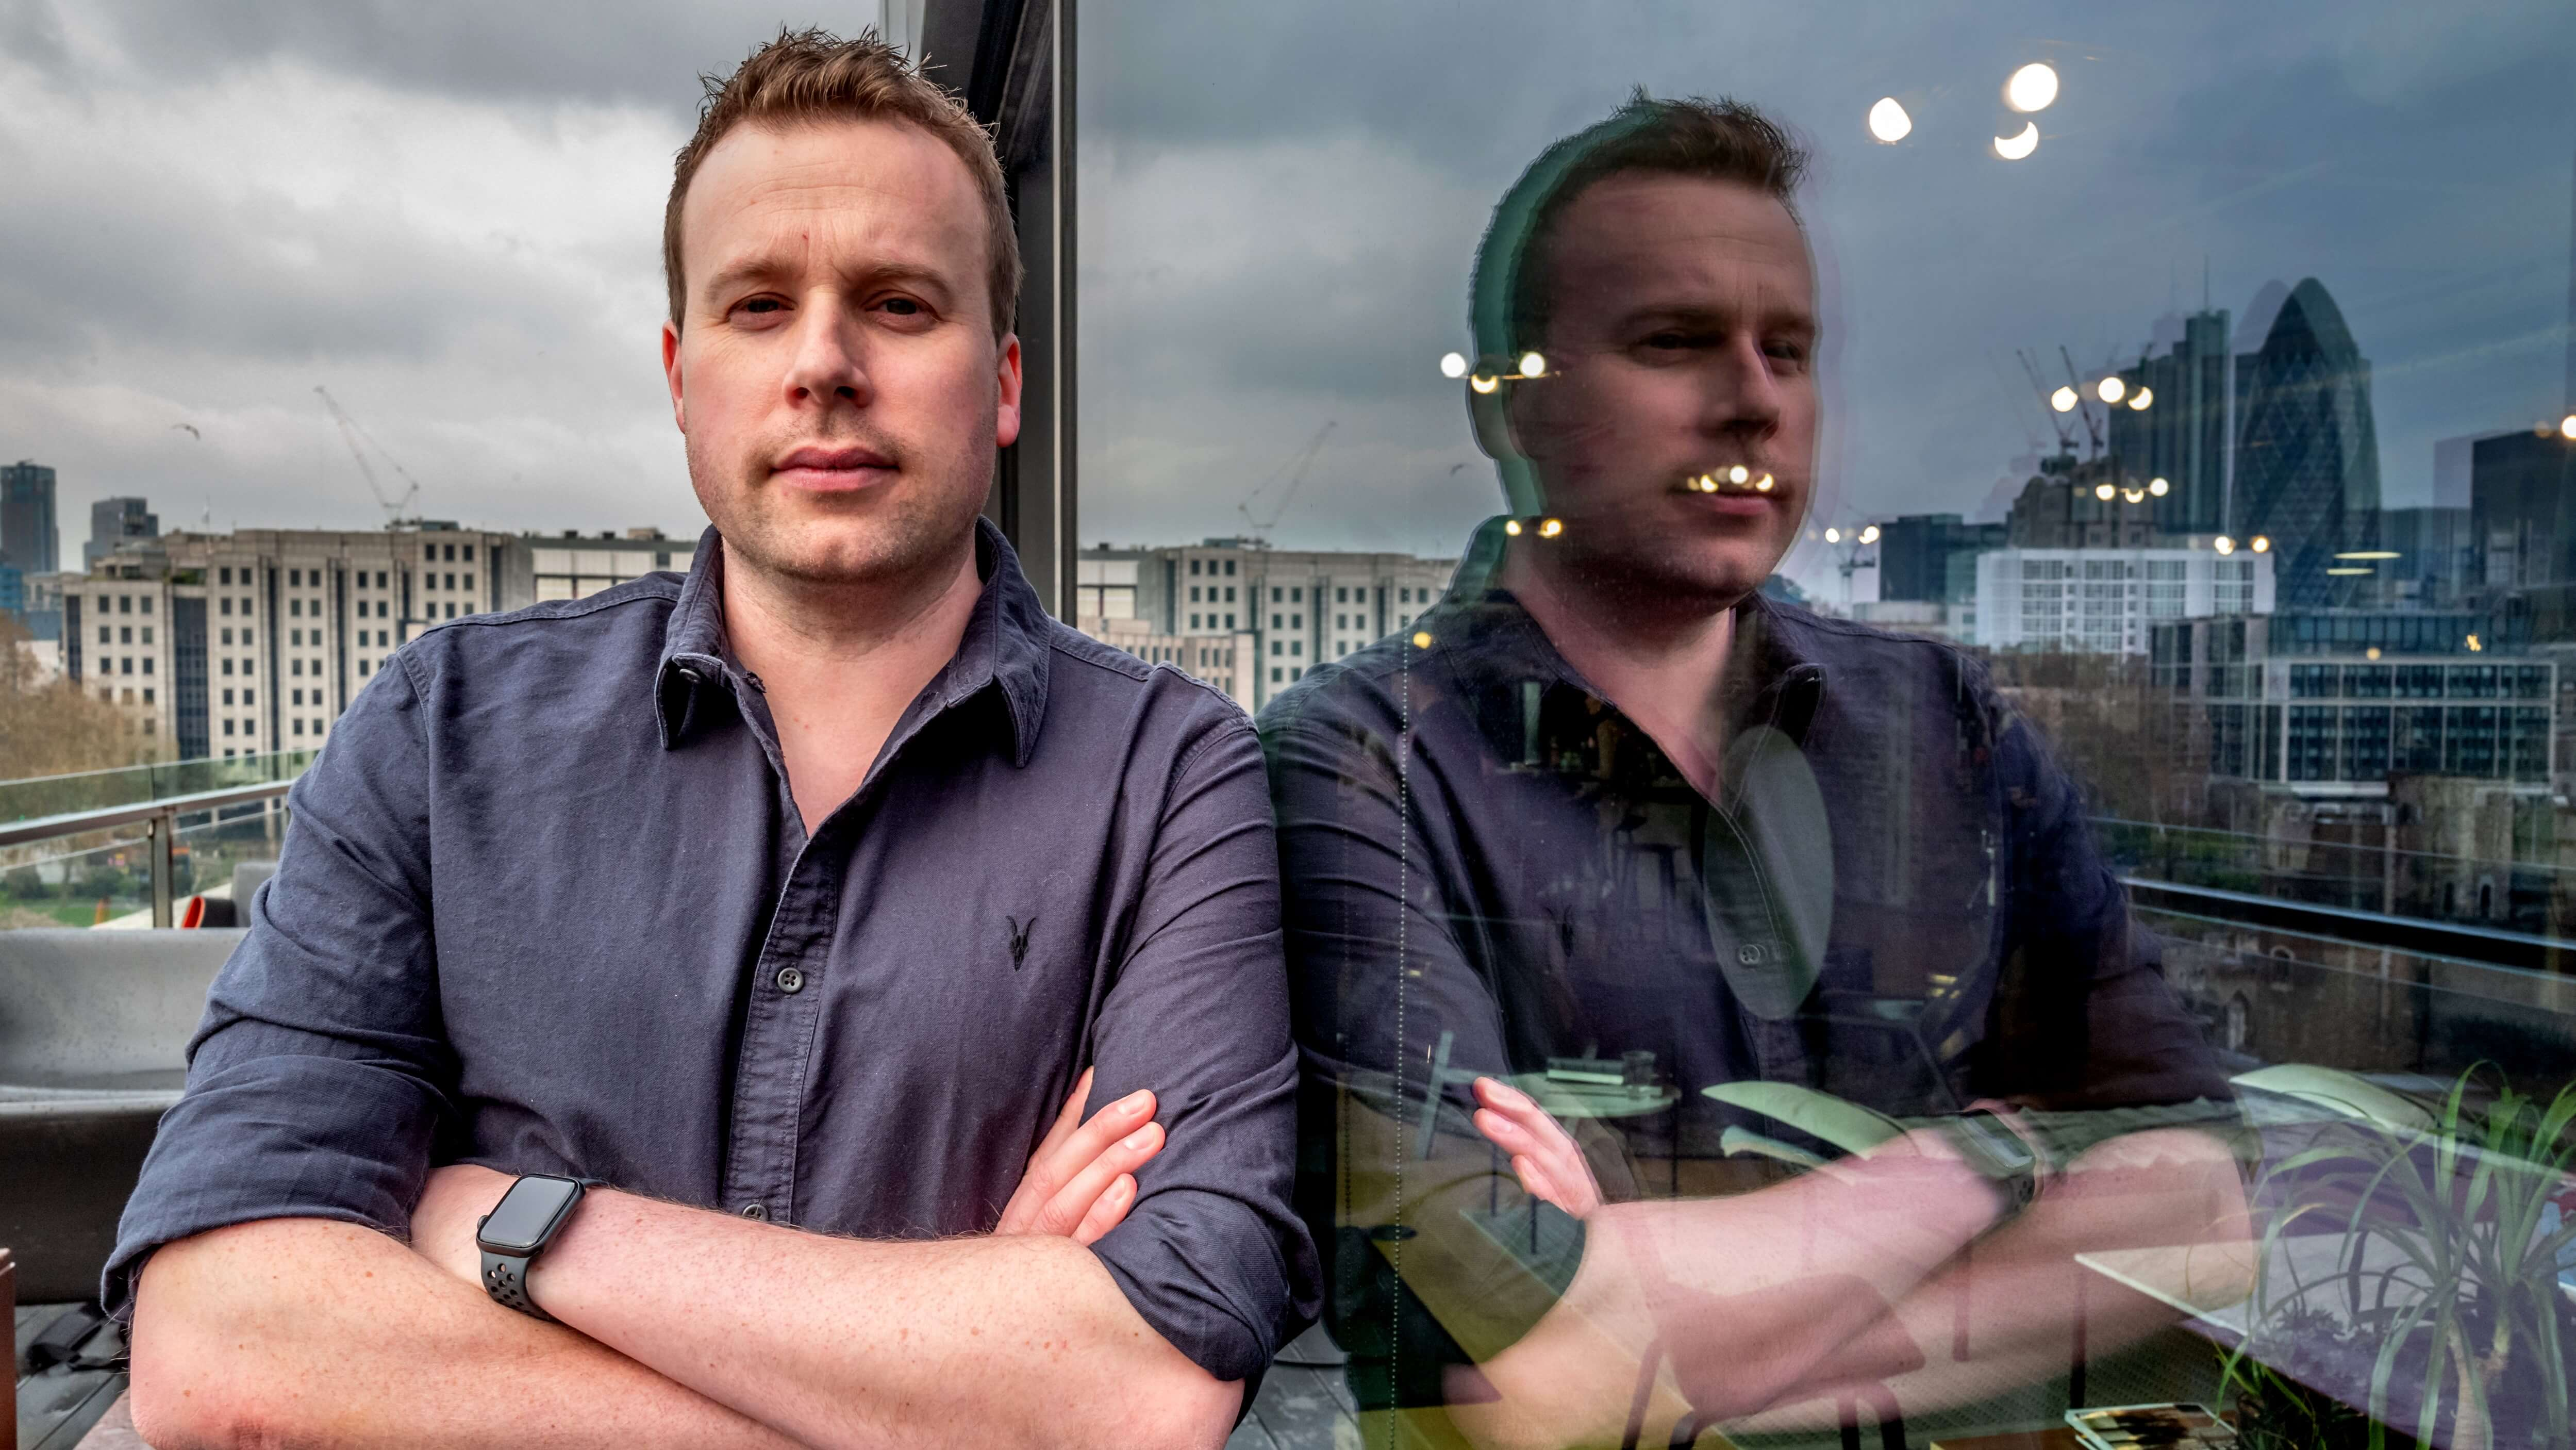 Pipster: 'Our Trading App Helped Students Beat The City'